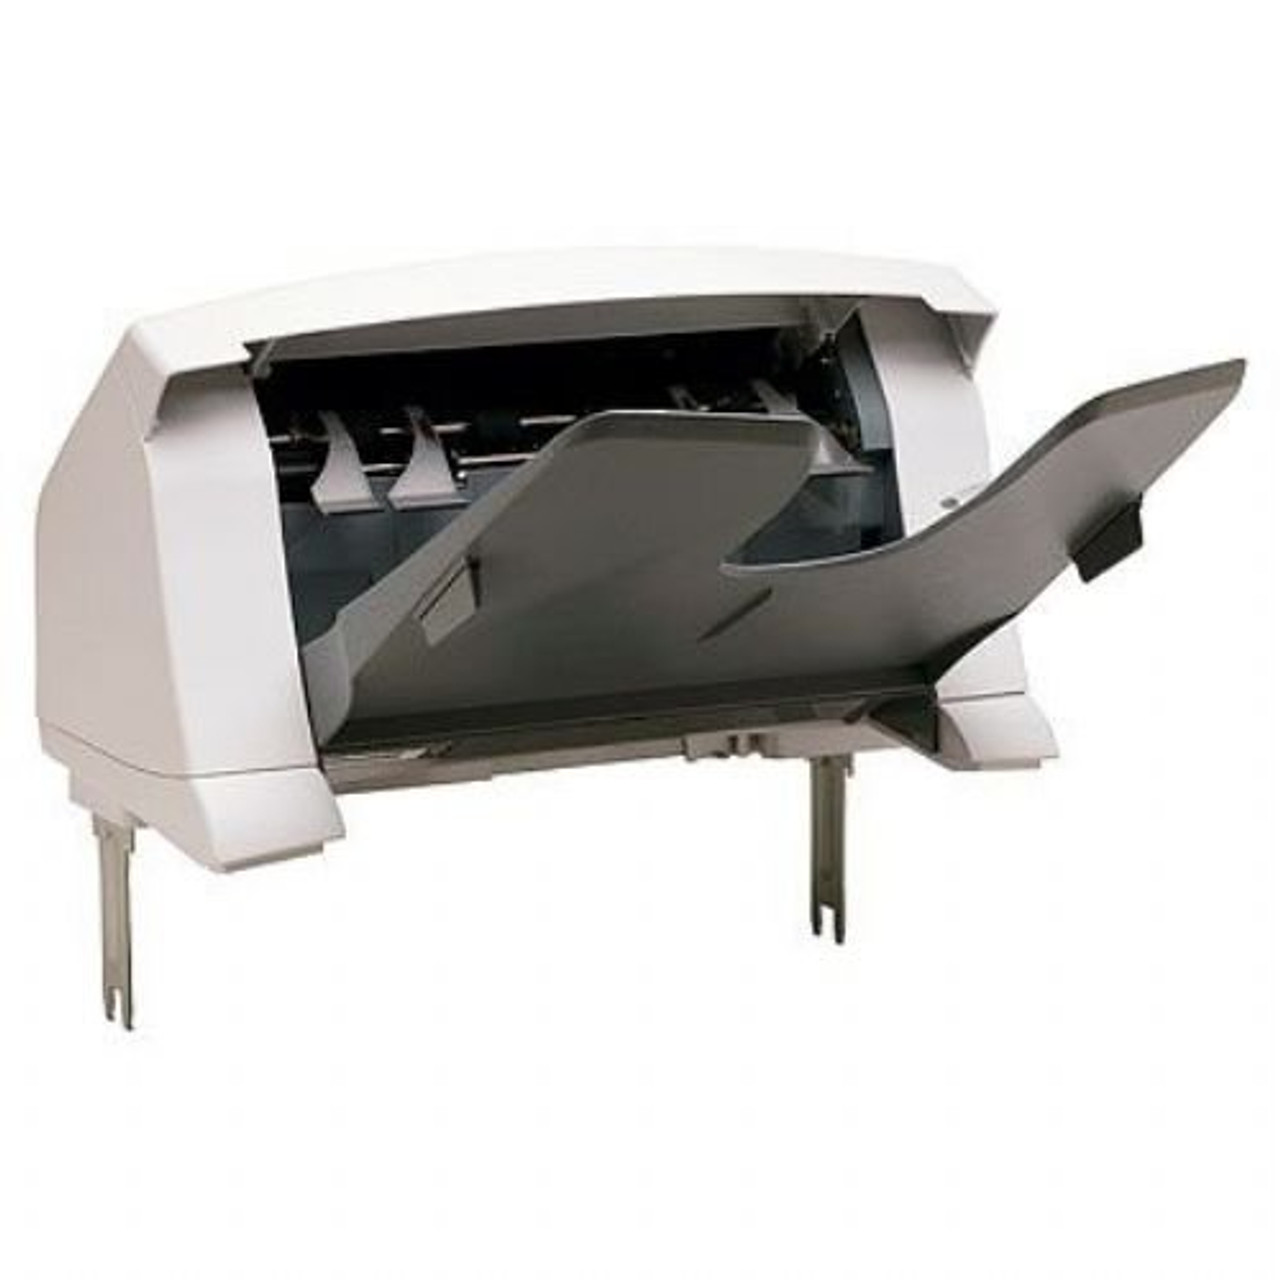 500 Sheet Stacker for HP LaserJet 4200 4300